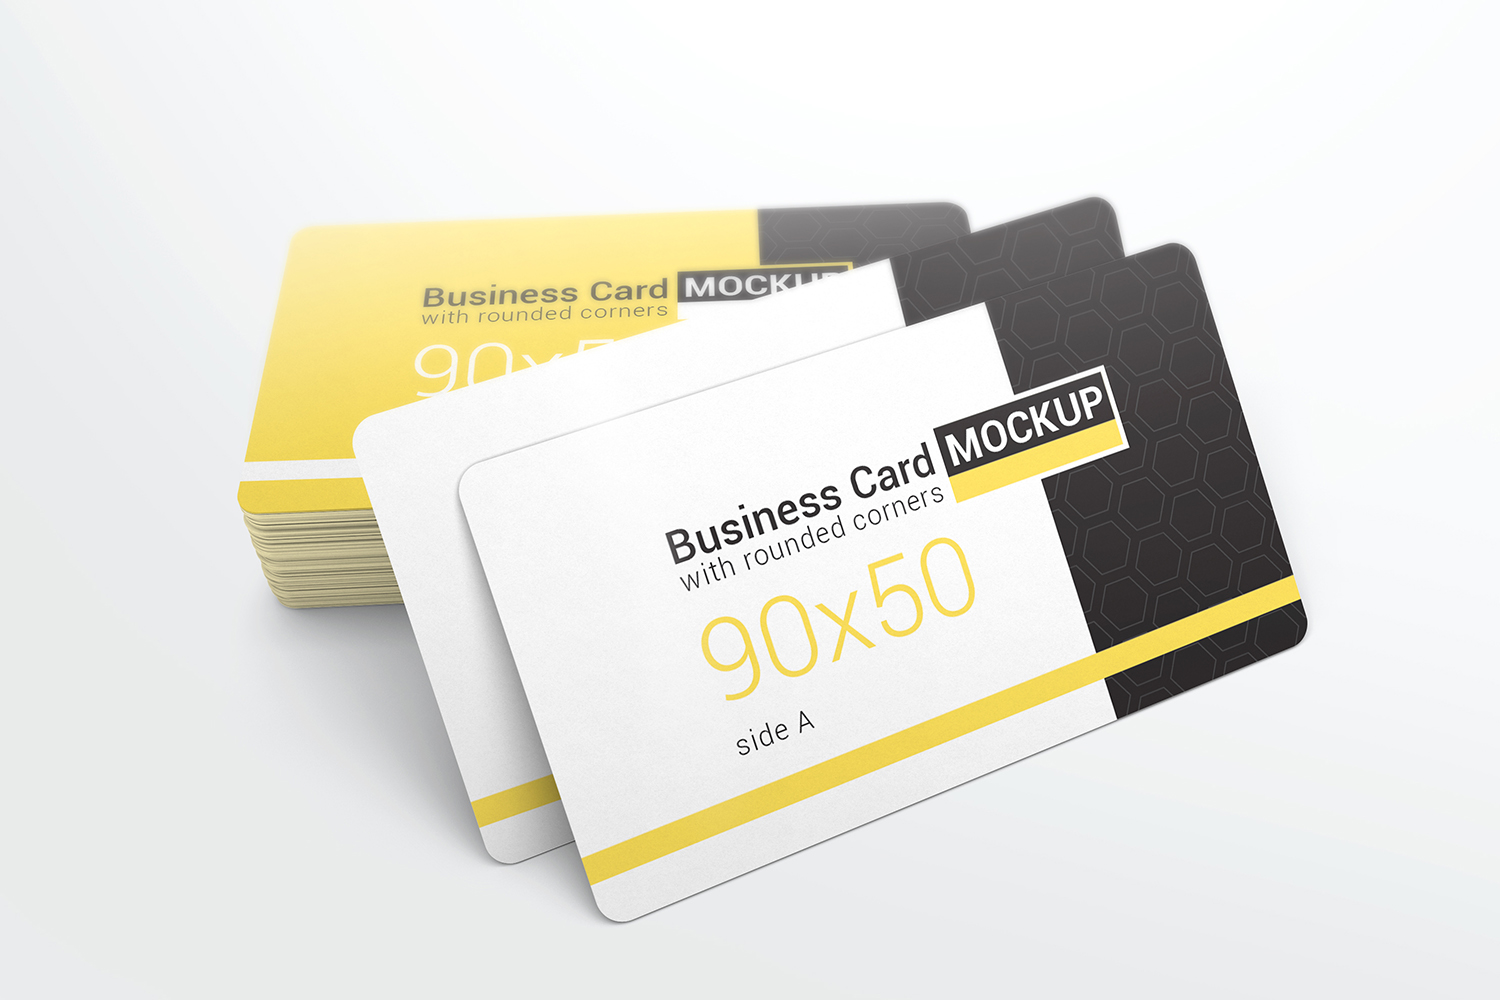 Business Card With Rounded Corners Mockups example image 2